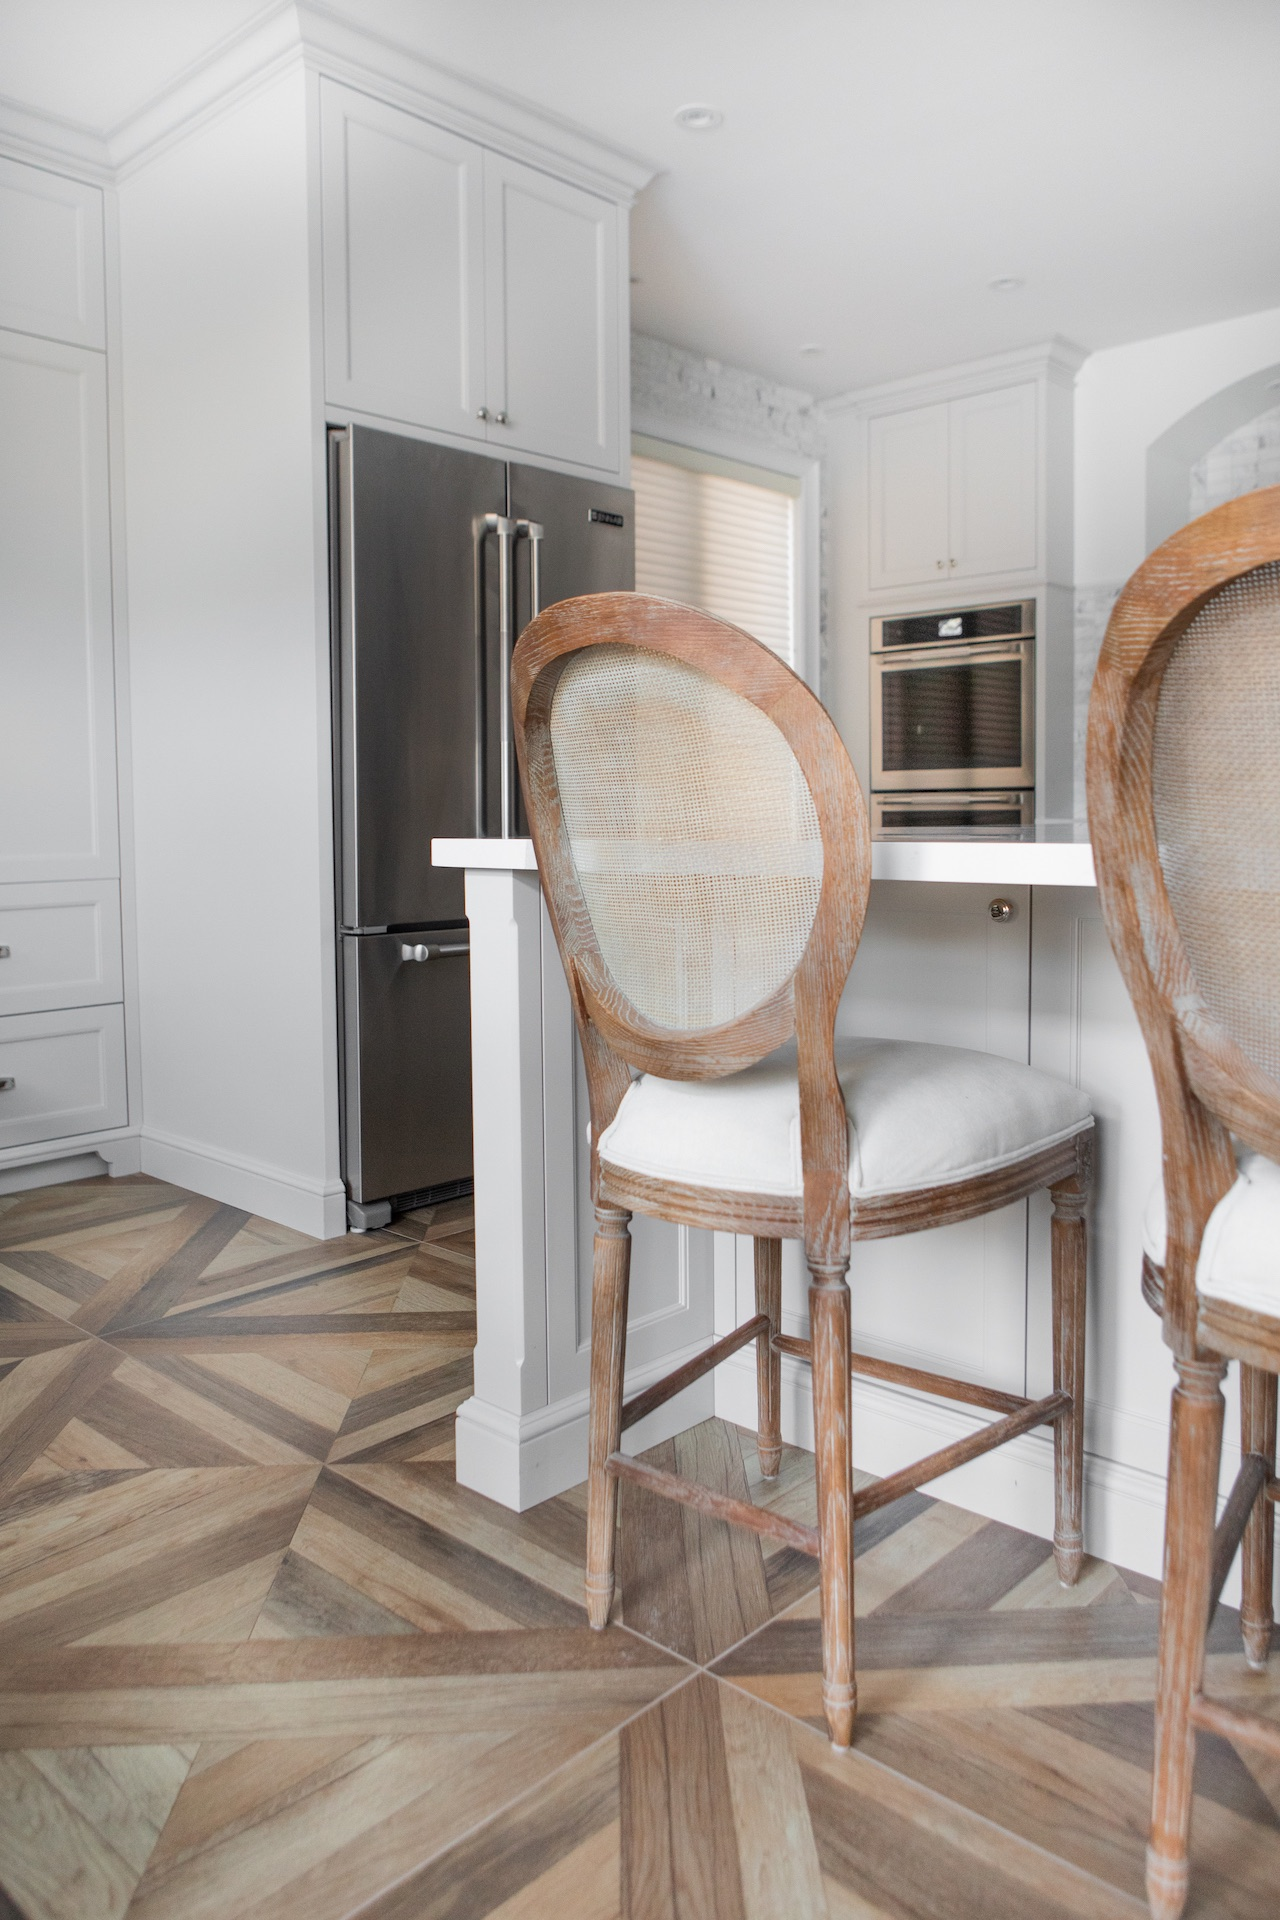 Wood floor with white and wood bar stools